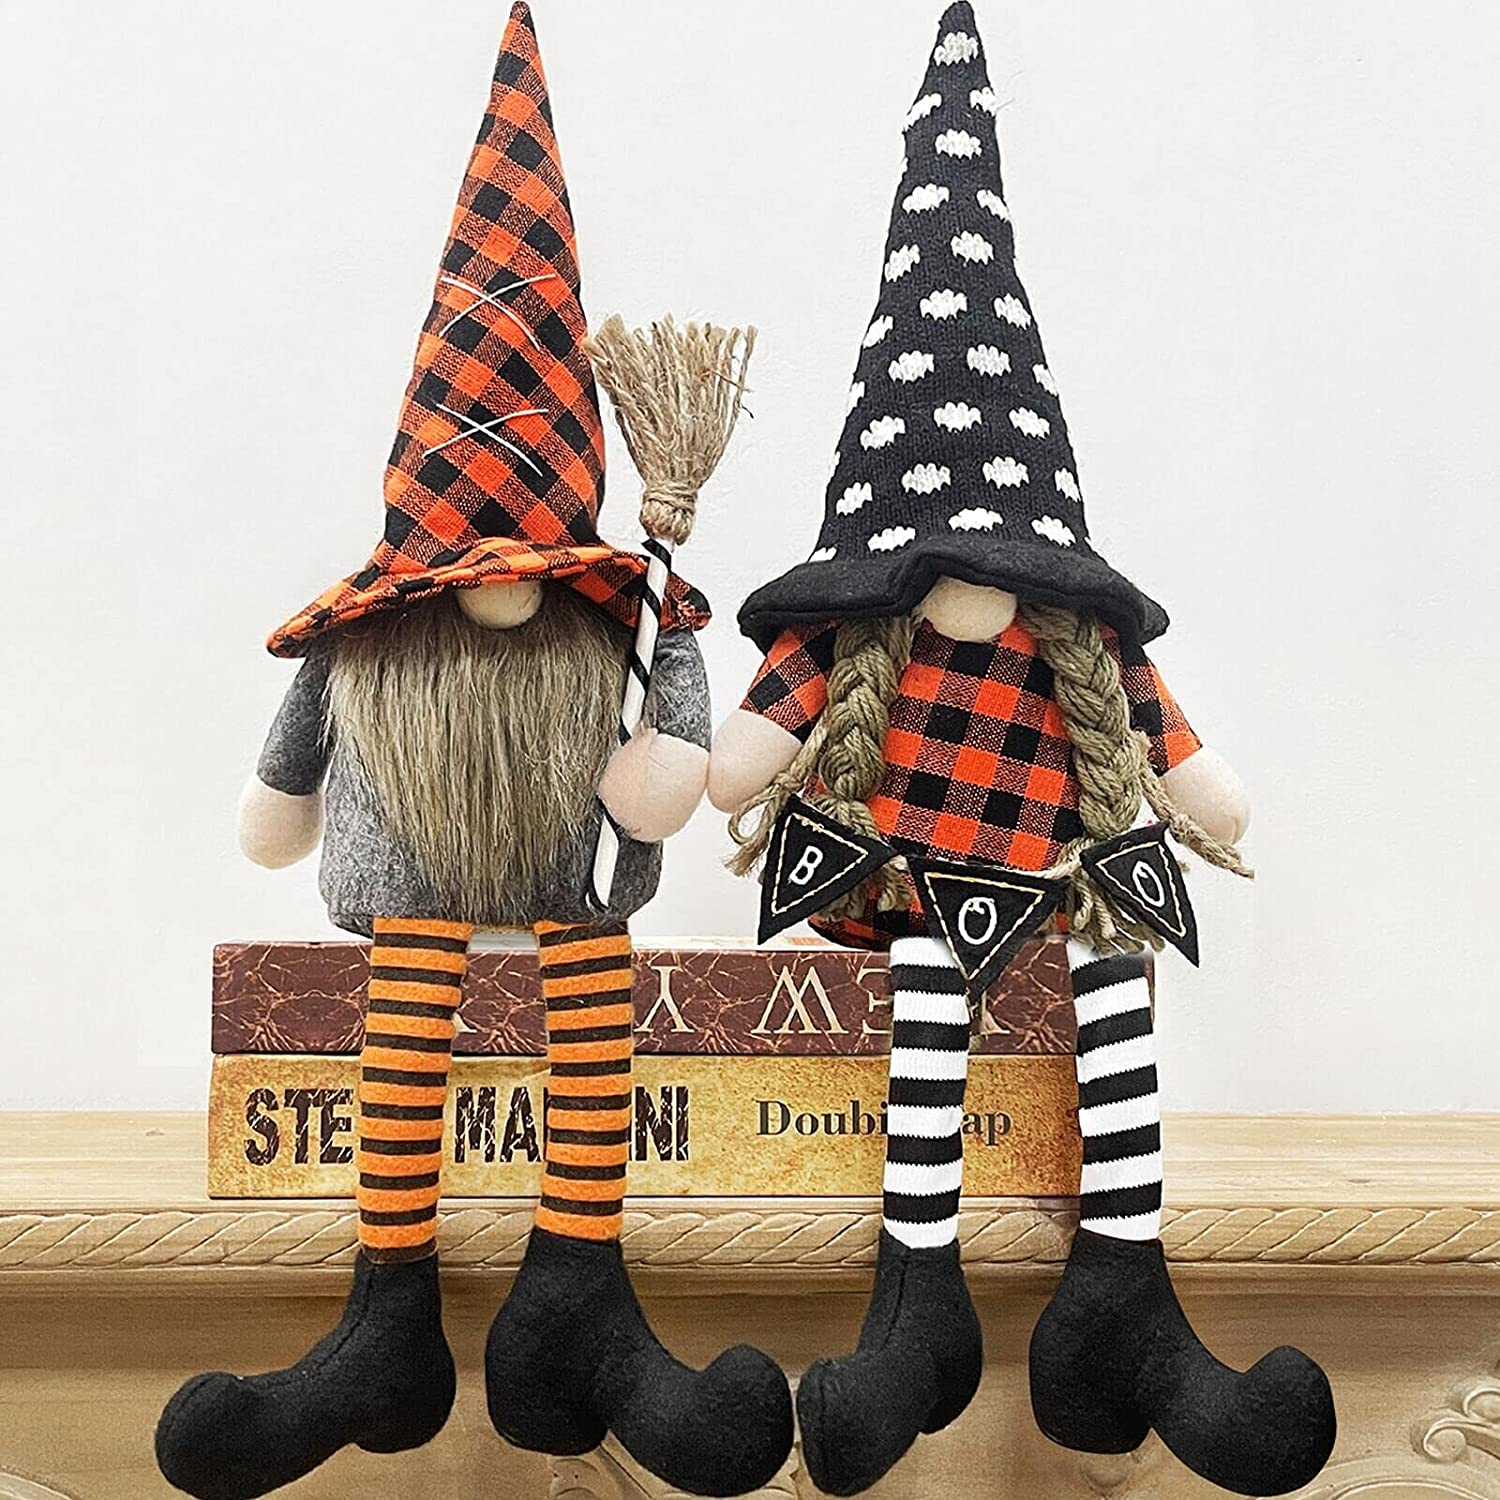 TURNMEON 2 Pcs Plush Witch Gnomes Halloween Centerpiece Decorations,Halloween Gnomes Decorations Doll Elf Scandinavian Halloween Party Ornaments Home Decor, Toys for Kids Adults